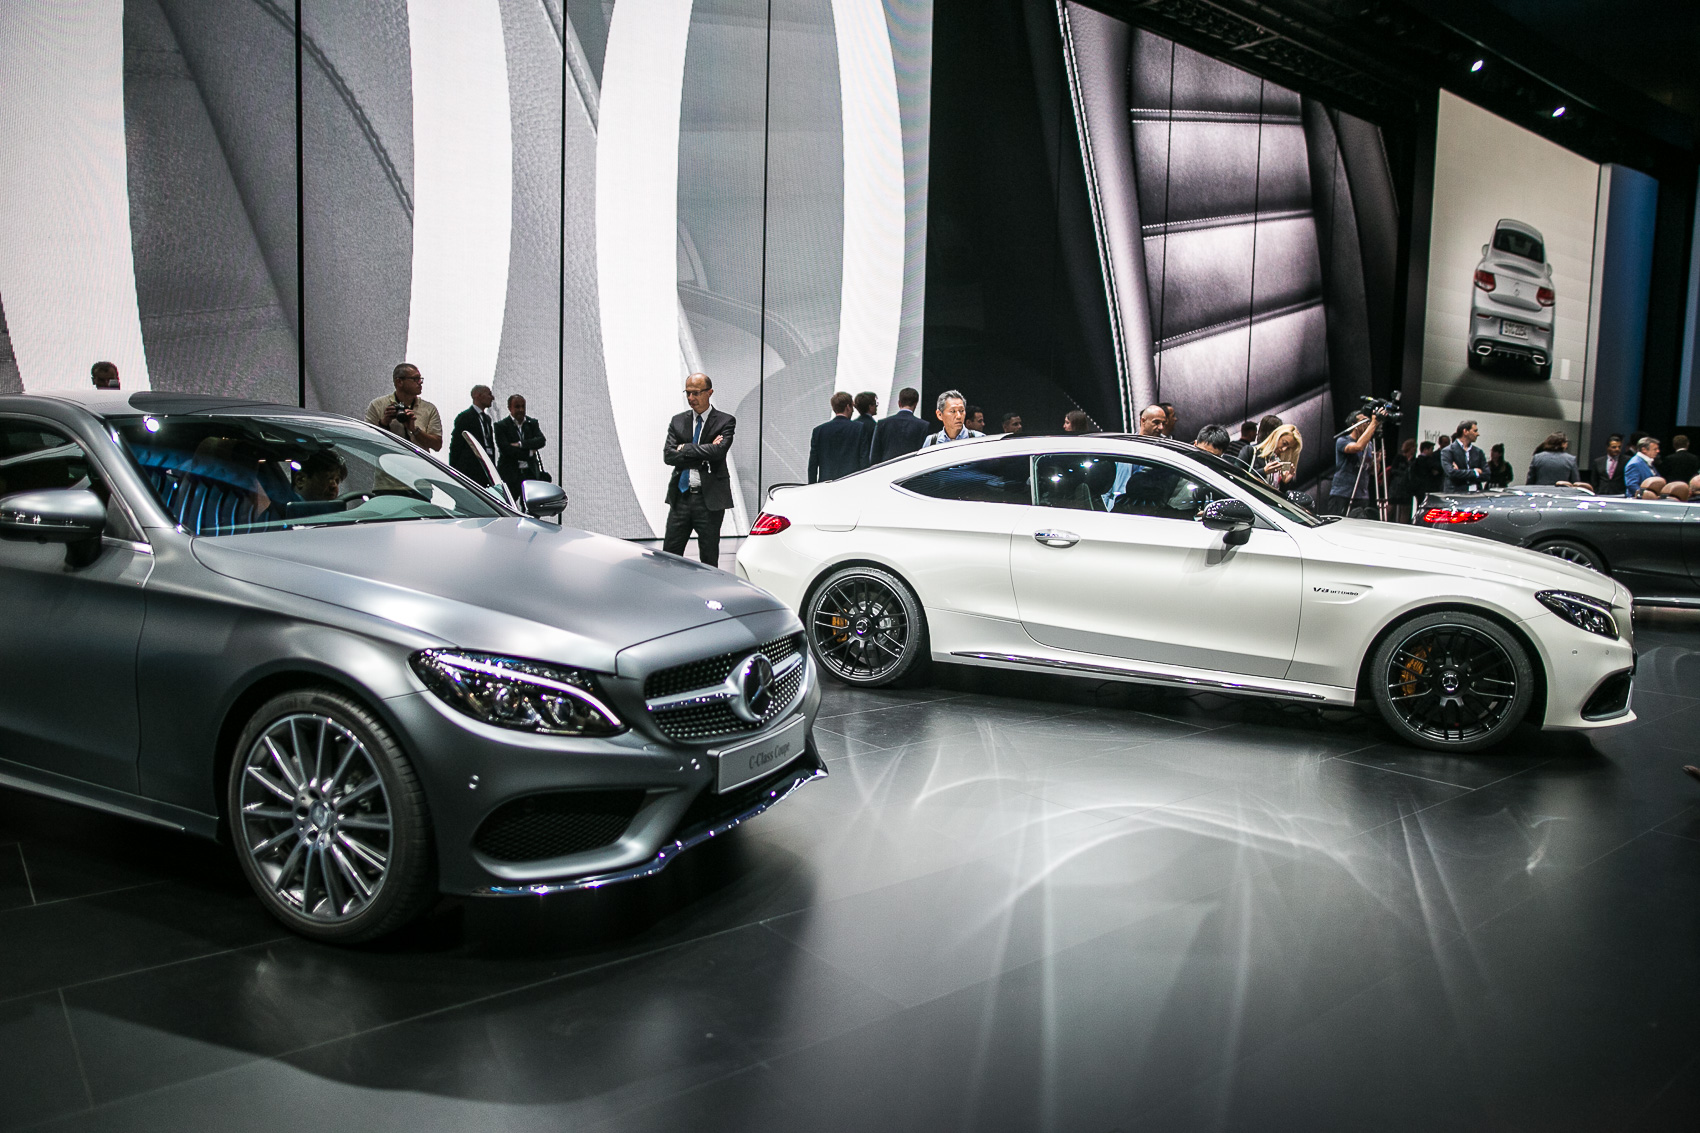 https://www.autoguide.com/blog/wp-content/gallery/mercedes-benz-c-class-coupe-september-16-2015/Mercedes-Benz-C-Class-Coupe-01.jpg